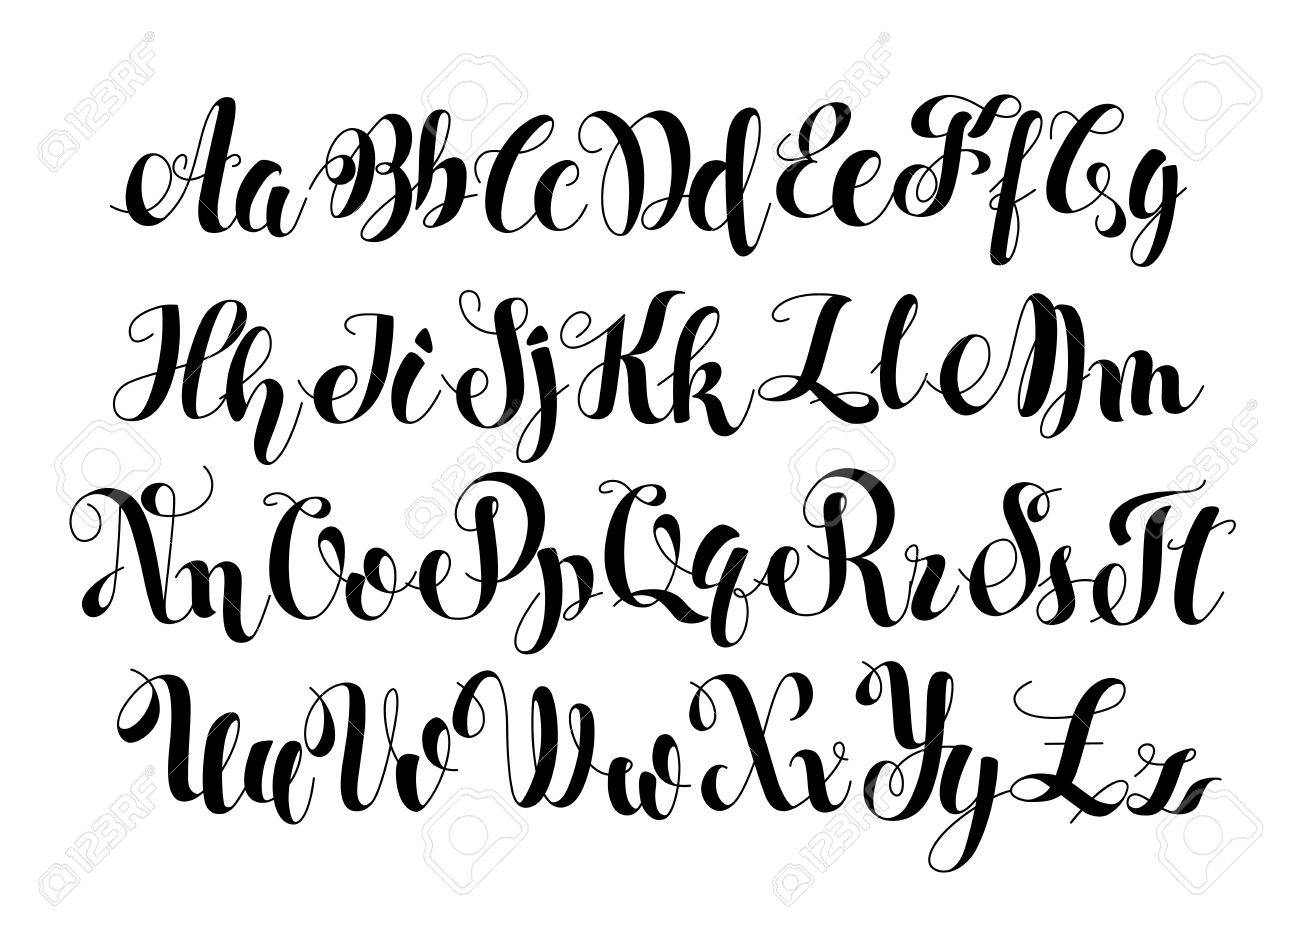 Handwritten Calligraphy Symbols Black And White Lettering ABC Letters Modern Brushed Painted English